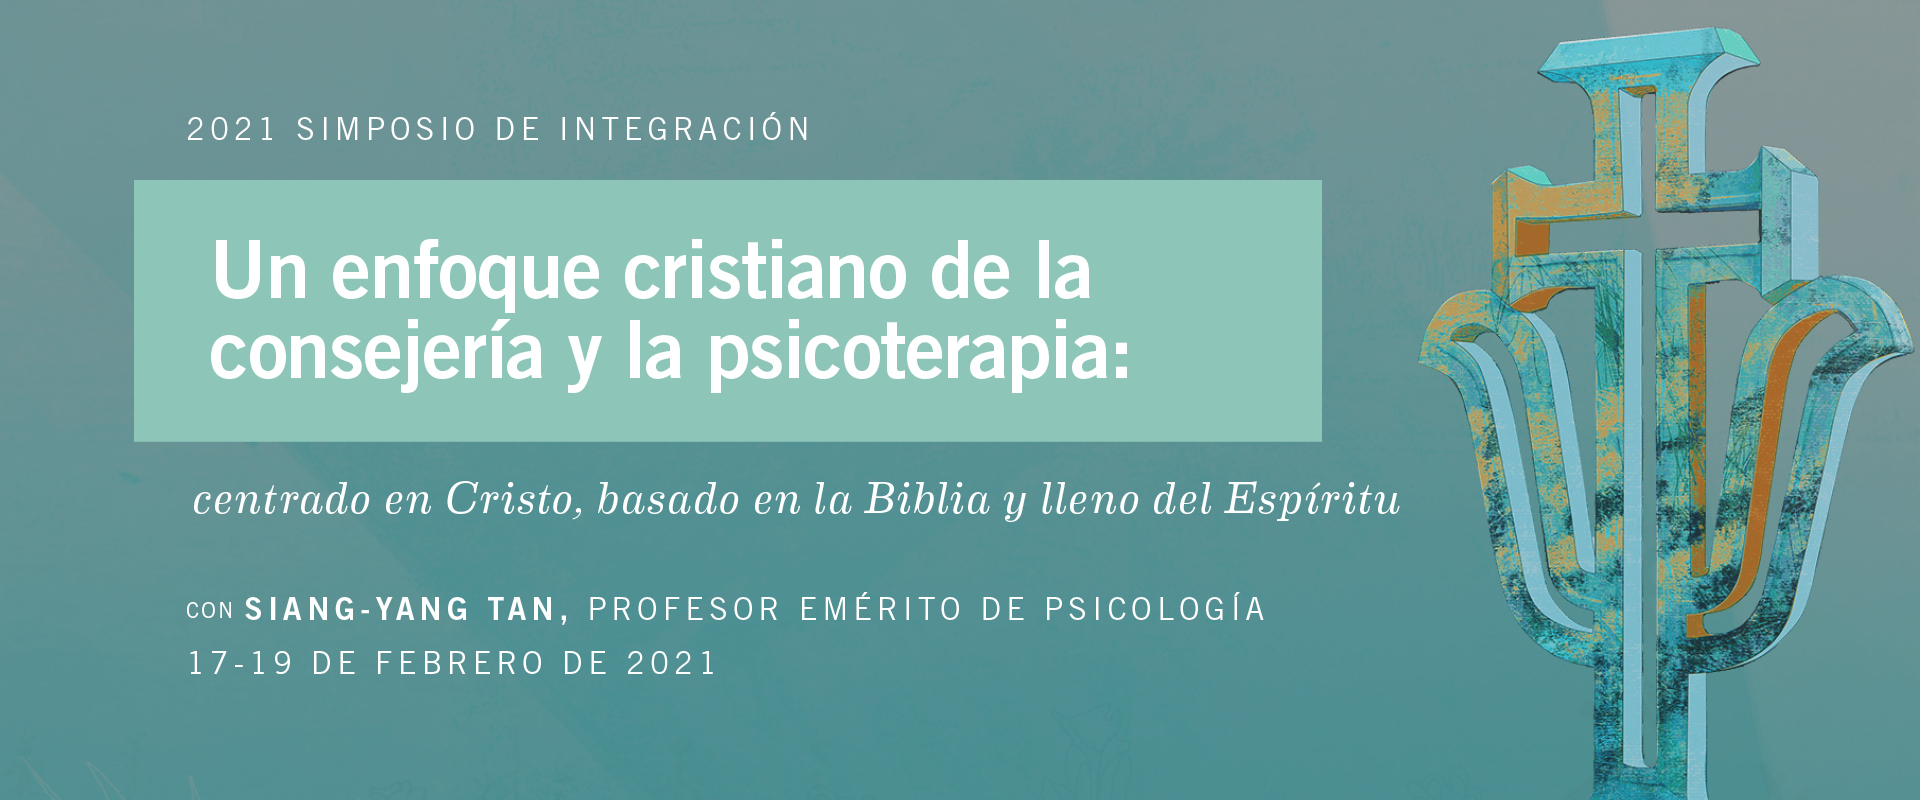 IntegrationSymposium_translated web banner updated Spanish title